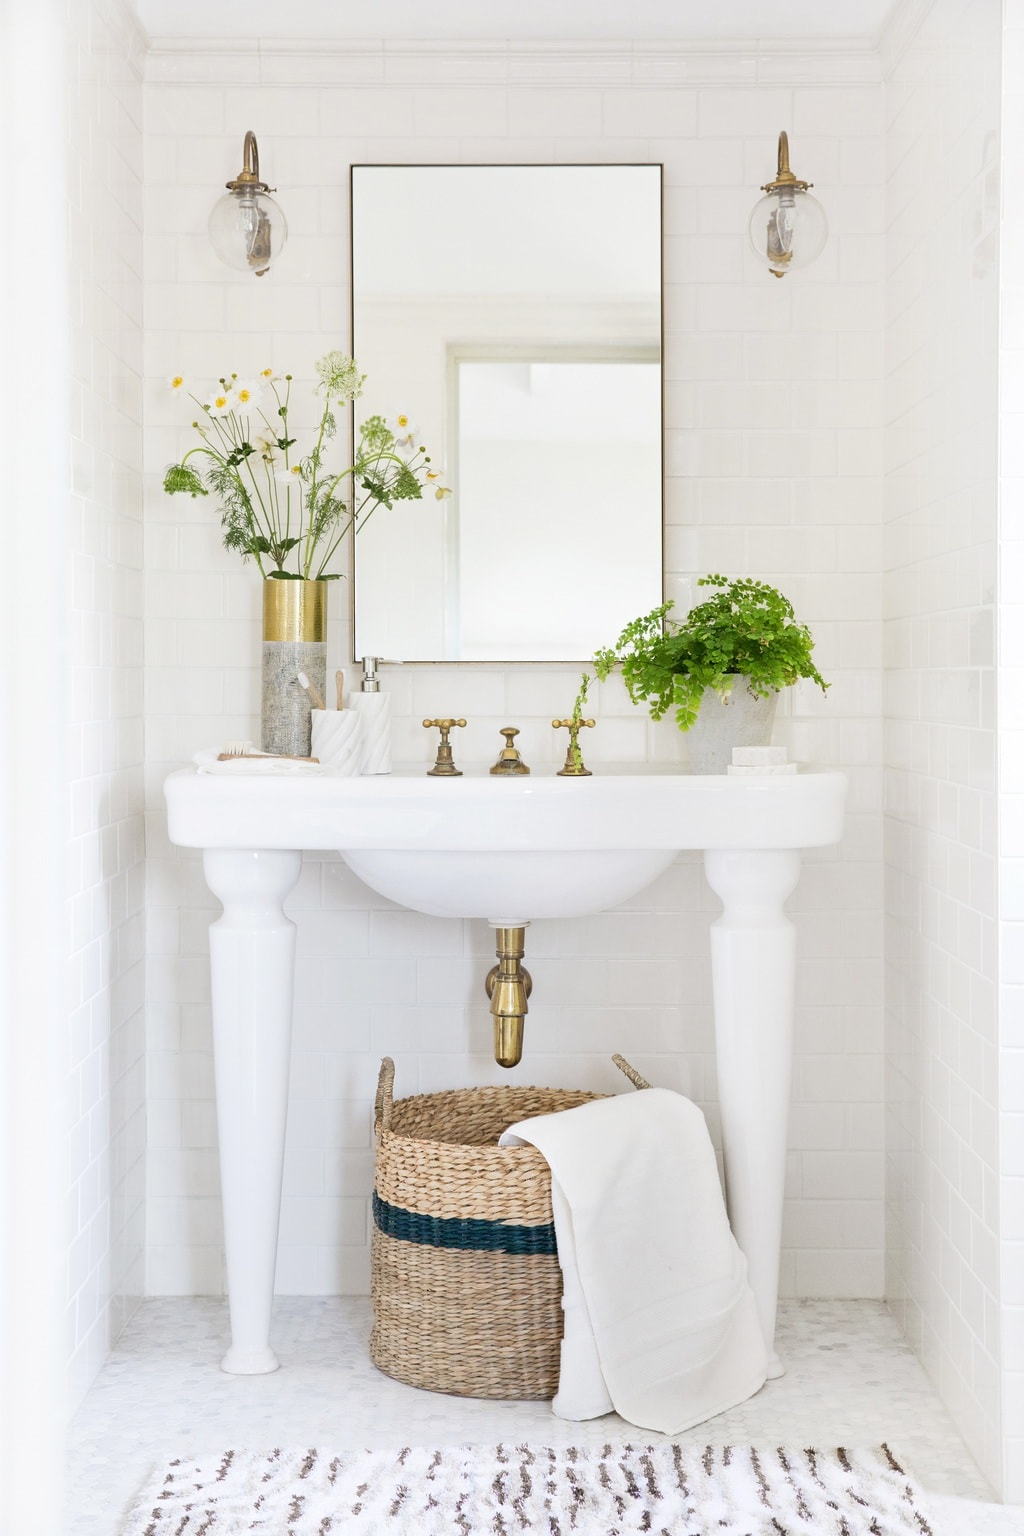 Classic white bathroom with subway tile, fern, glass sconces, and wicker basket storage on Thou Swell @thouswellblog #bathroom #bathroomdesign #classicbathroom #classicdesign #interiordesign